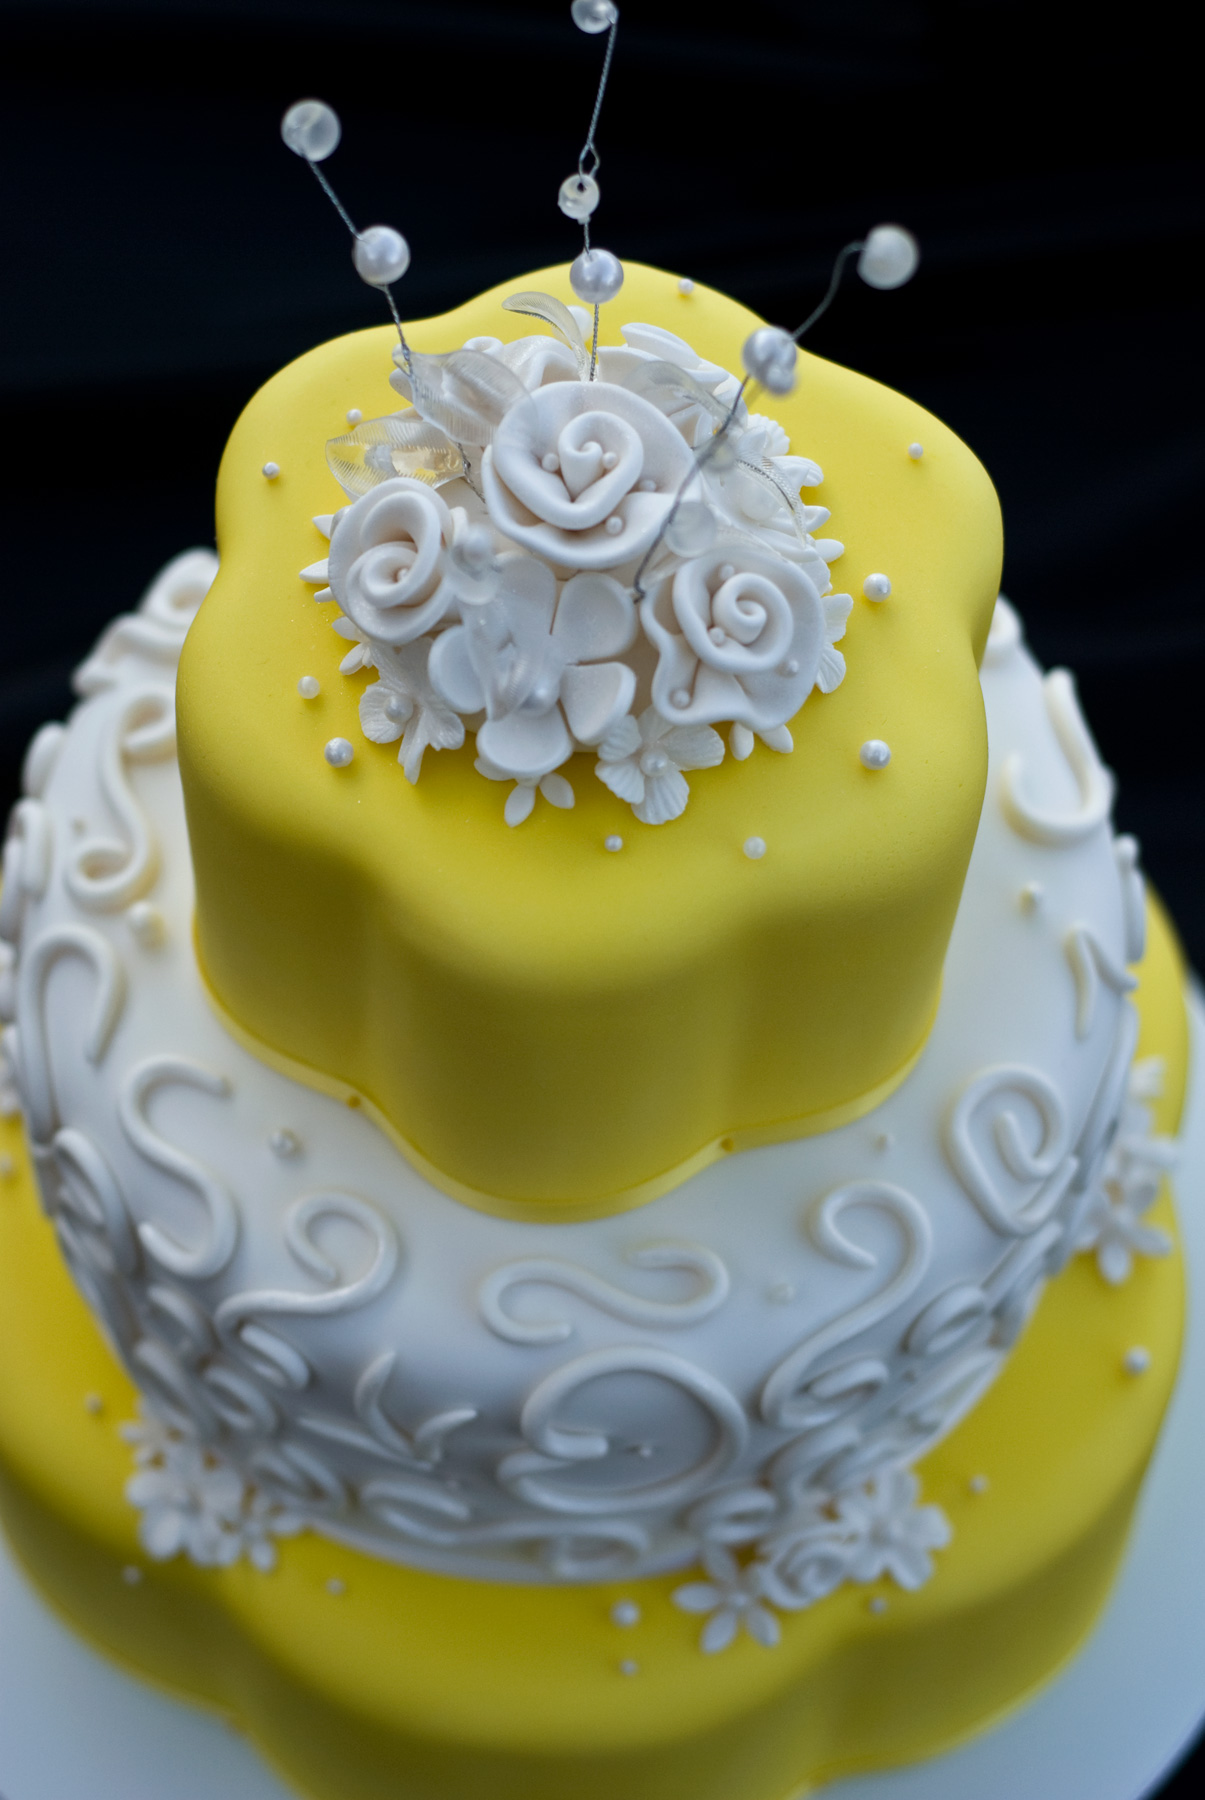 File:Wedding Cake - Yellow with White Roses.jpg - Wikimedia Commons